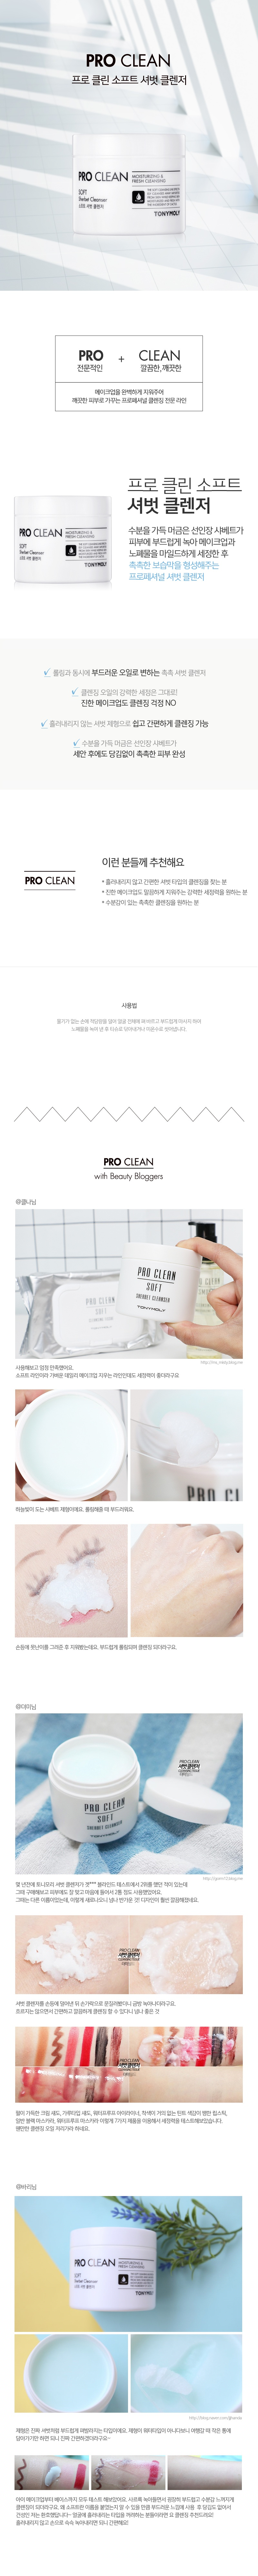 Tony Moly Pro Clean Soft Sherbet Cleanser9 korean cleanser product online shop malaysia china thailand1